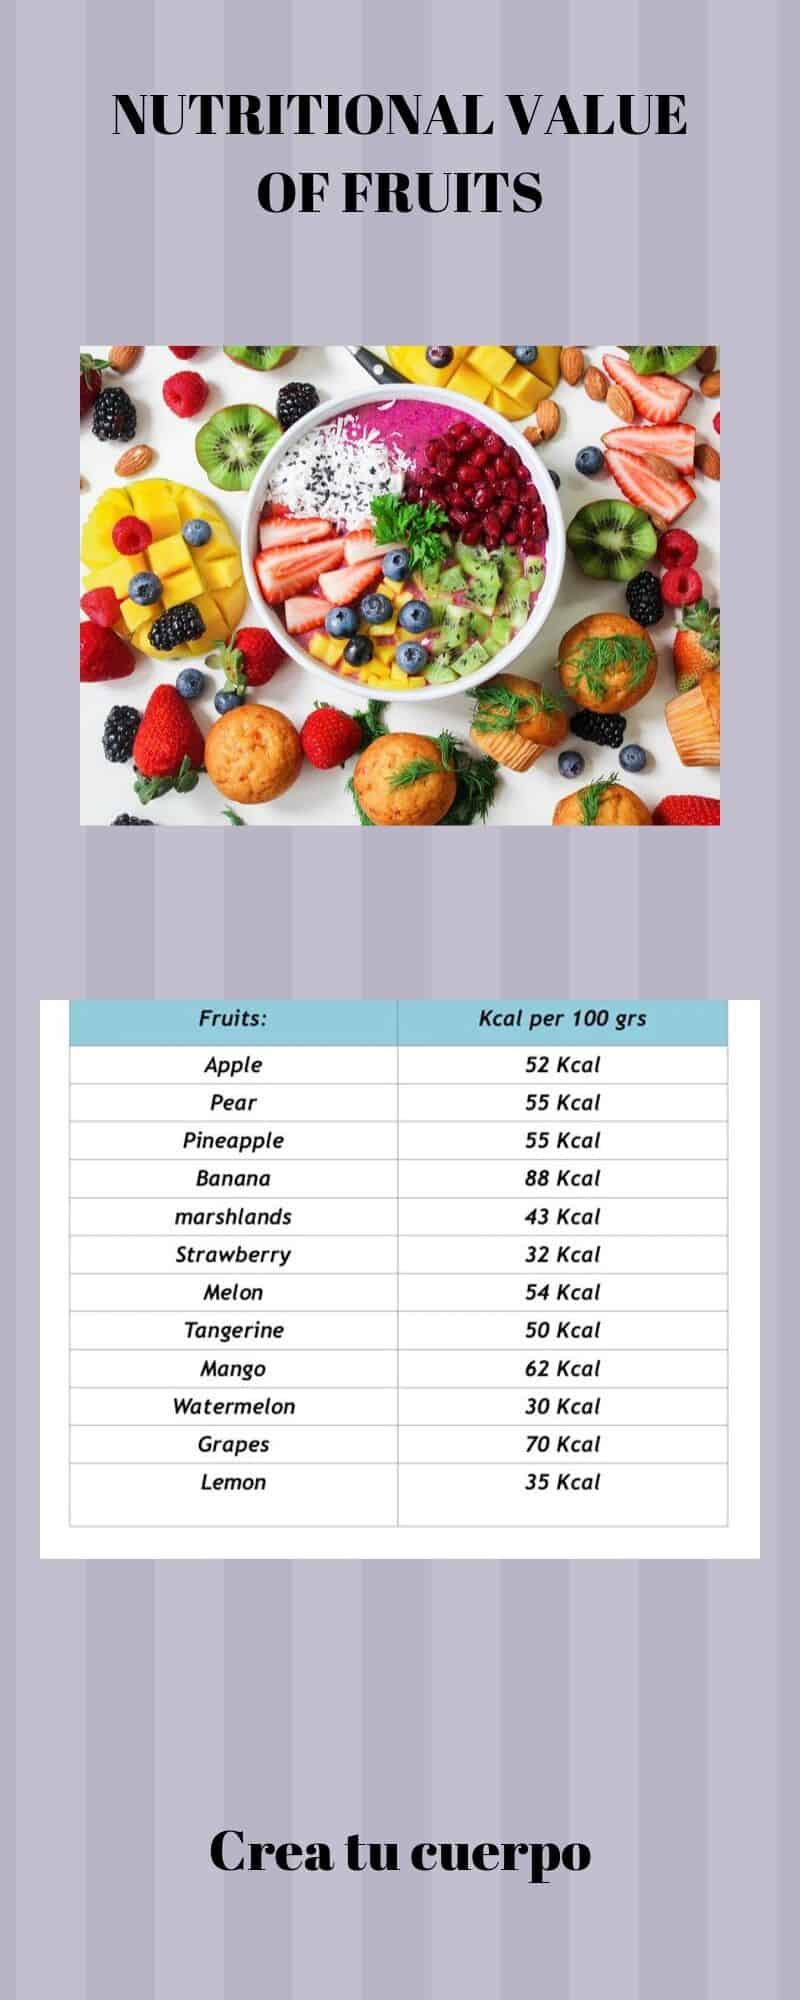 Graphics of calories from fruiste